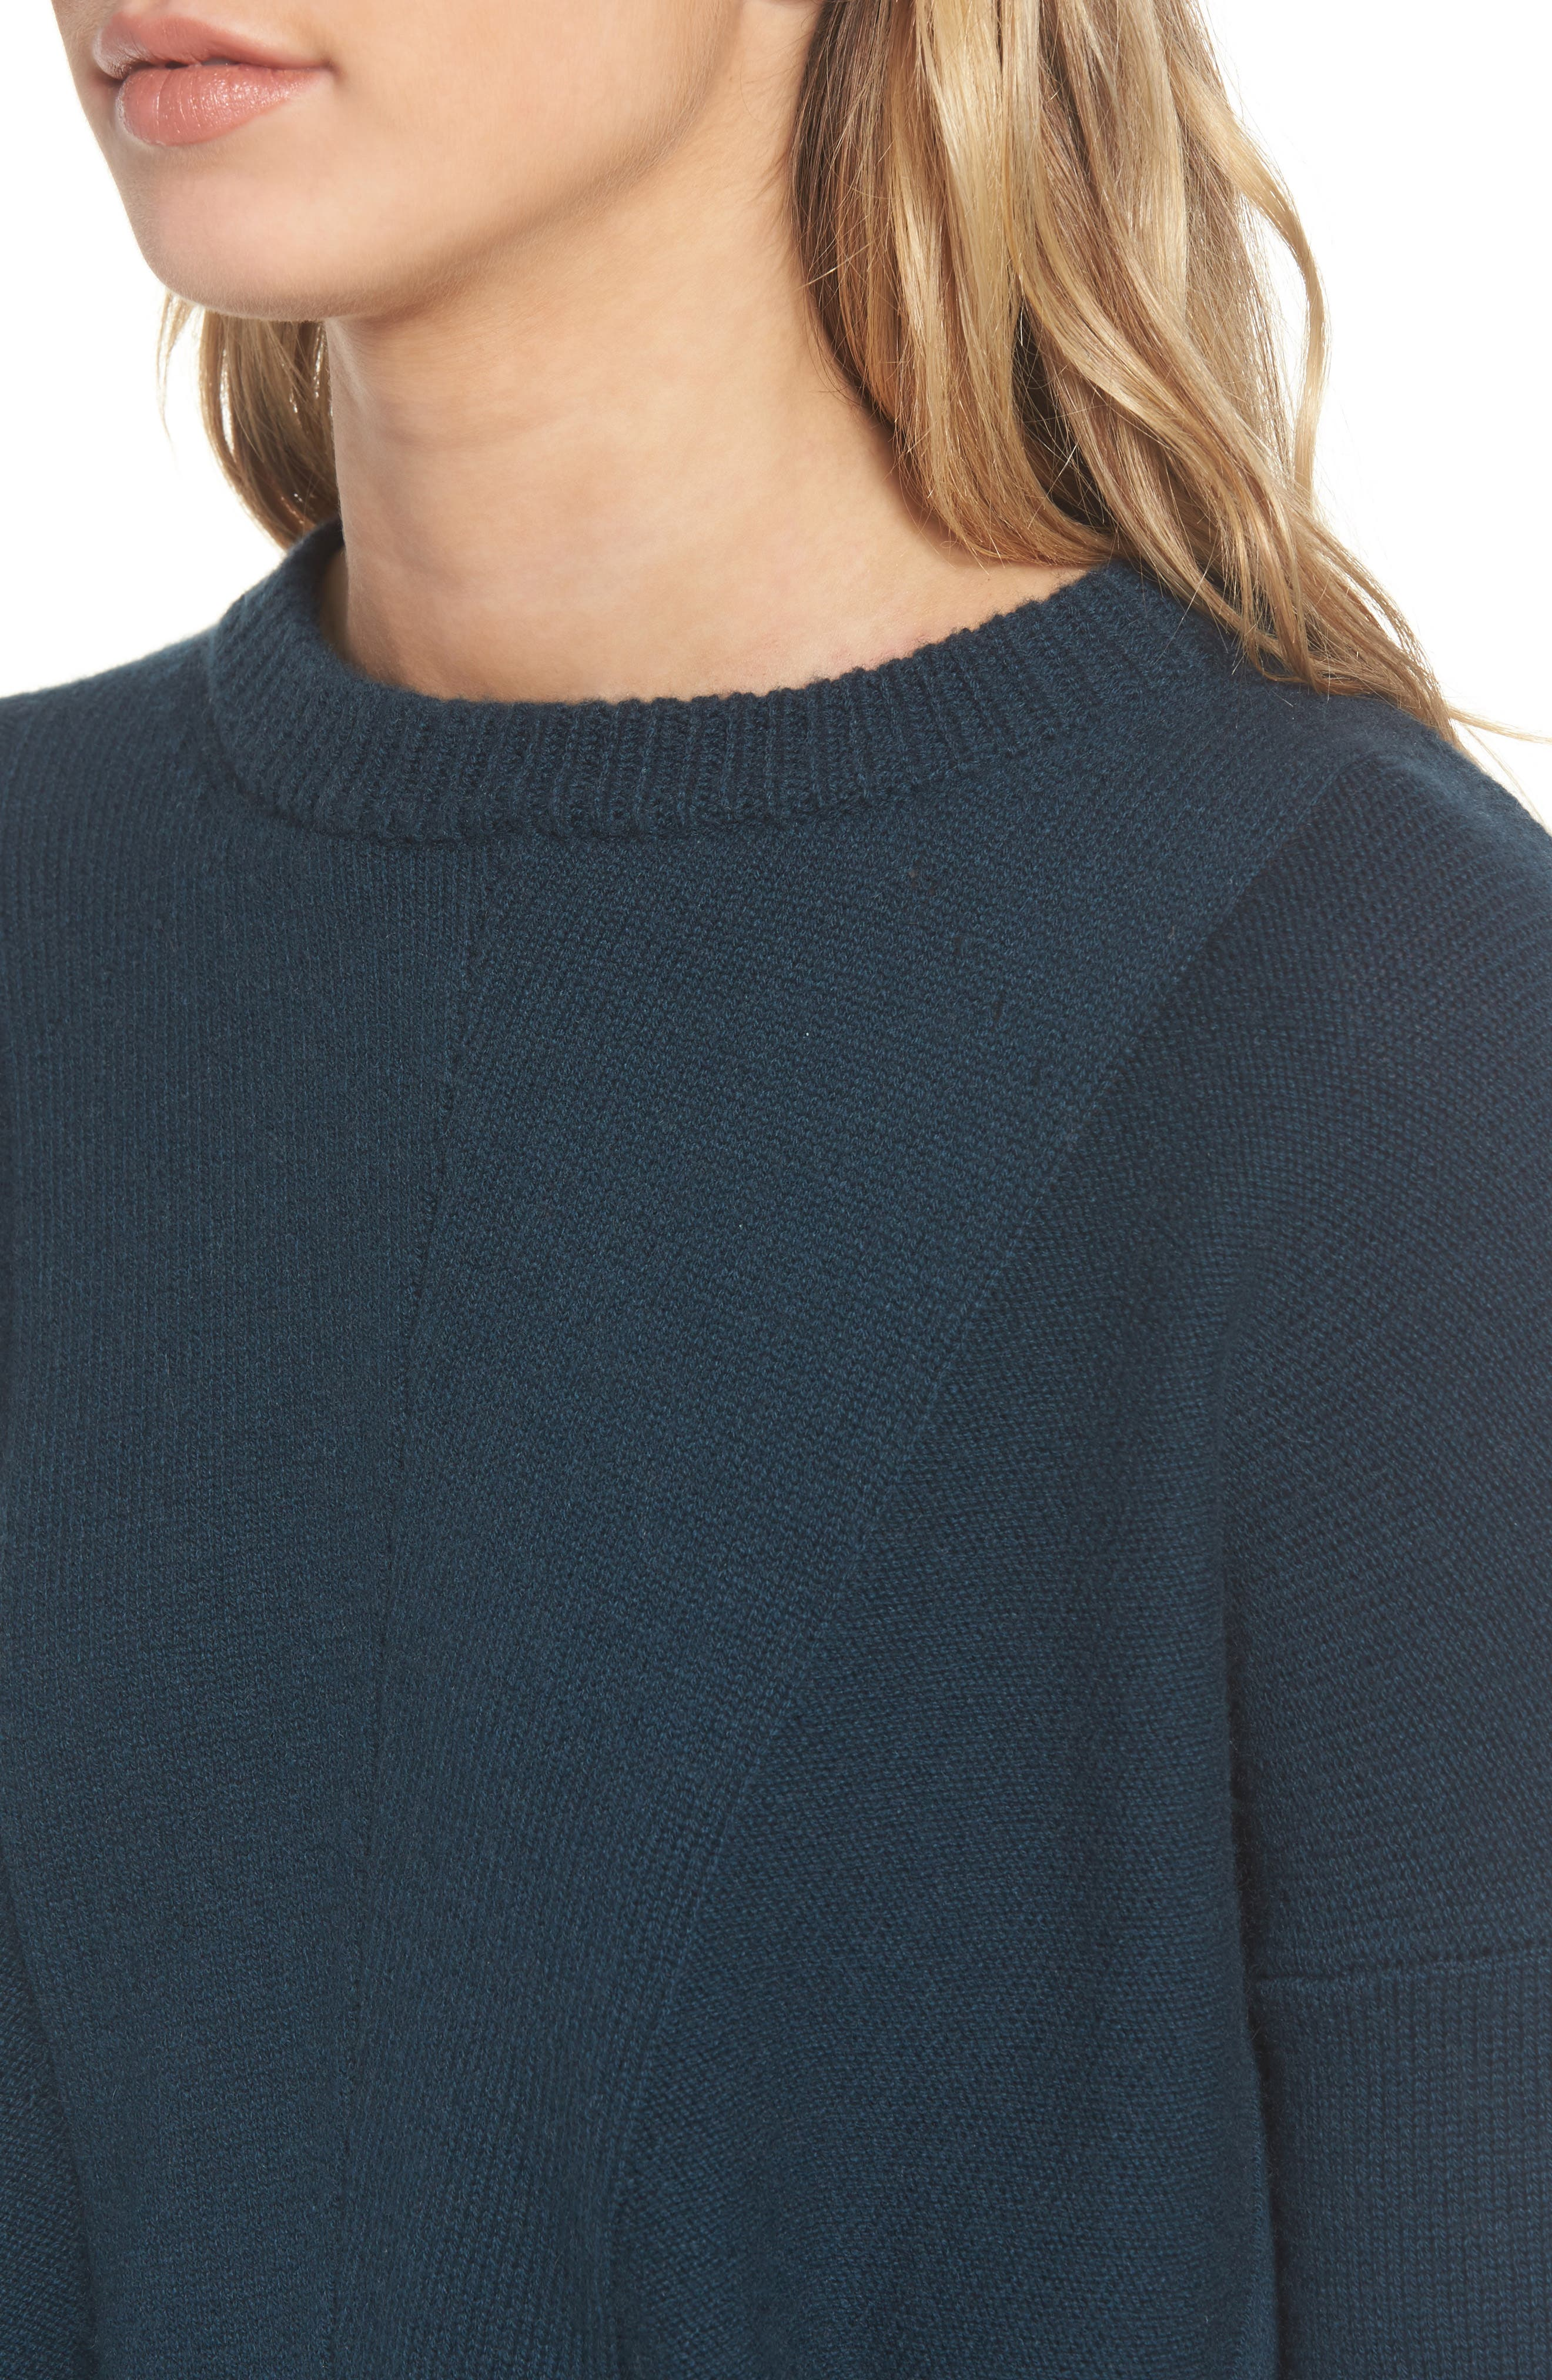 Joanna Wool & Cashmere Sweater,                             Alternate thumbnail 4, color,                             304